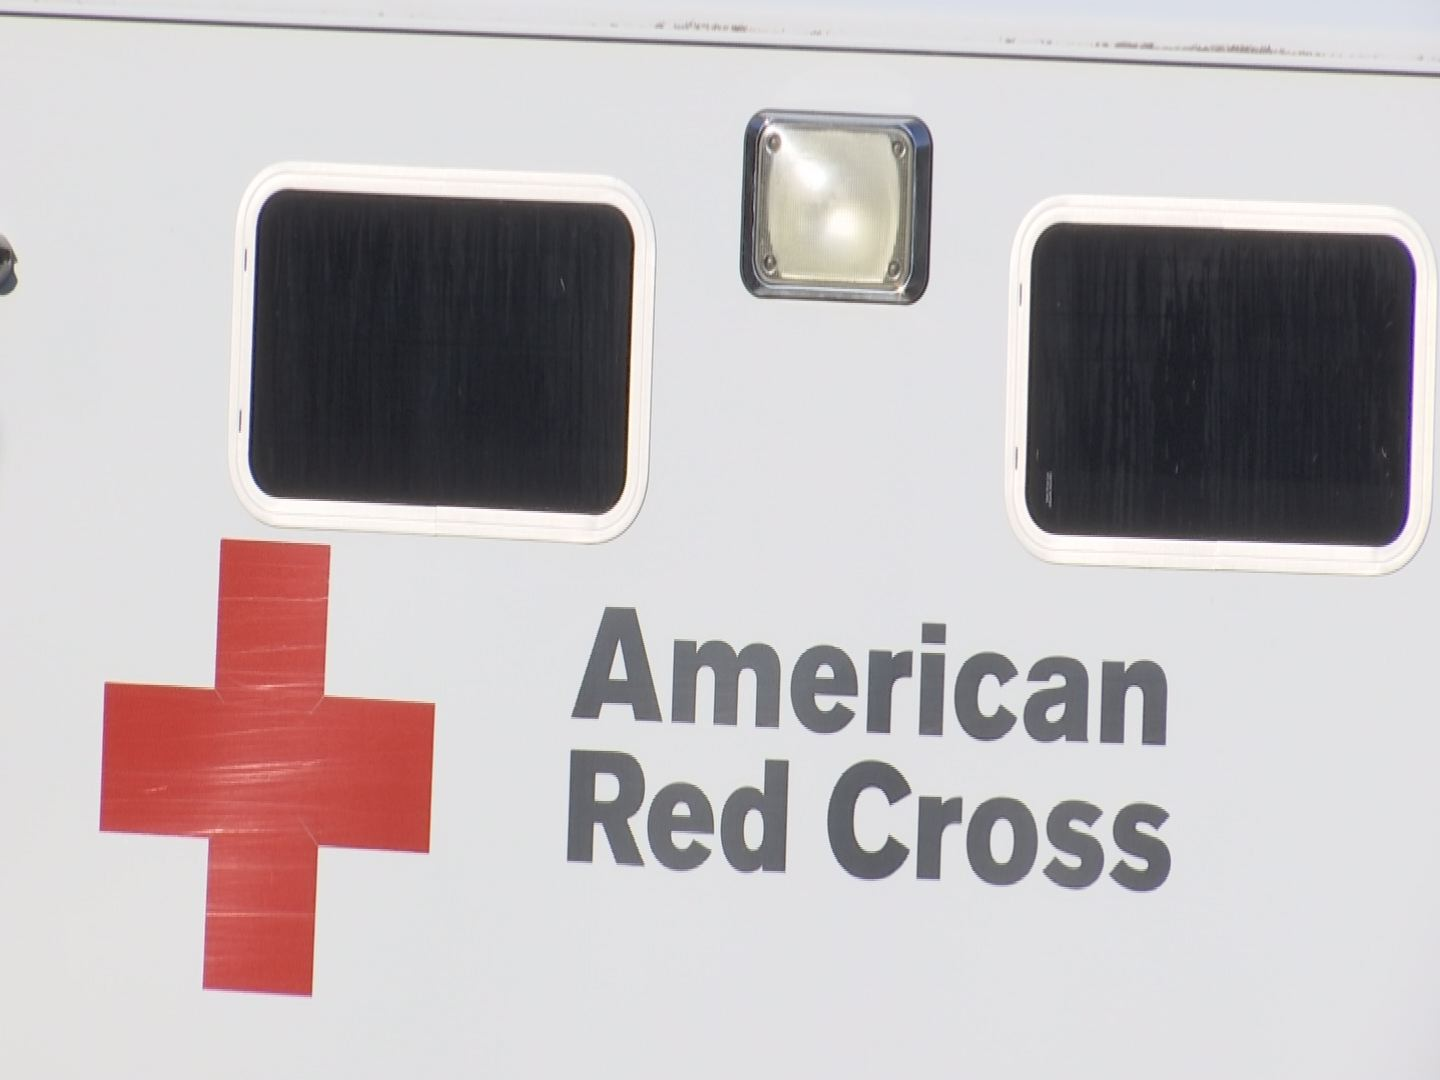 AMERICAN RED CROSS_342553